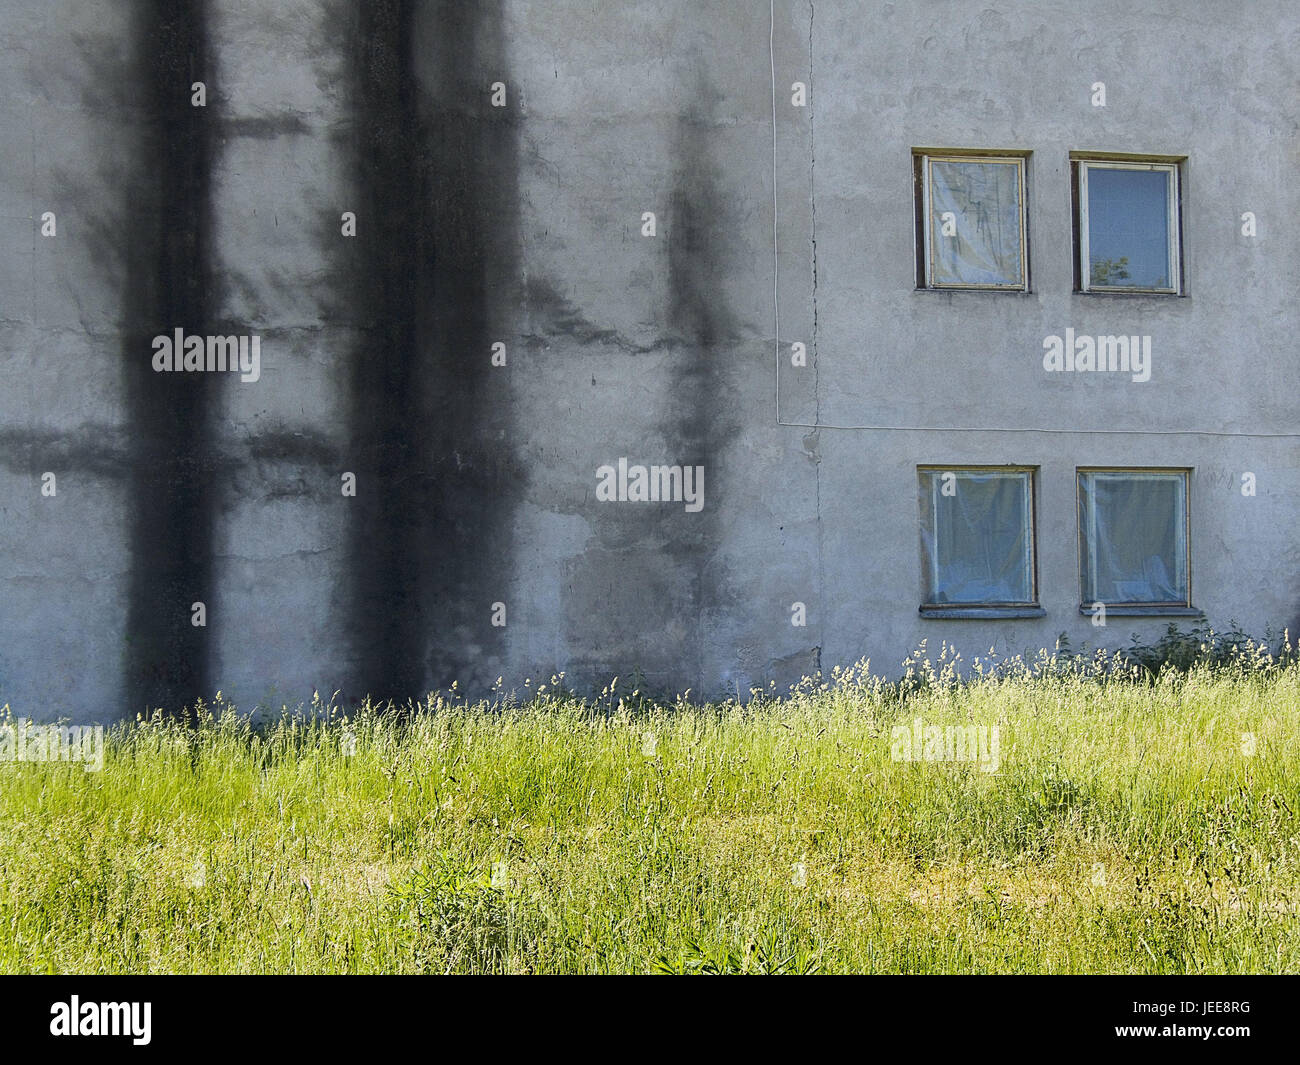 Lithuania, Vilnius, industrial zone, building, detail, meadow, the Baltic States, town, capital, architecture, facade, Stock Photo